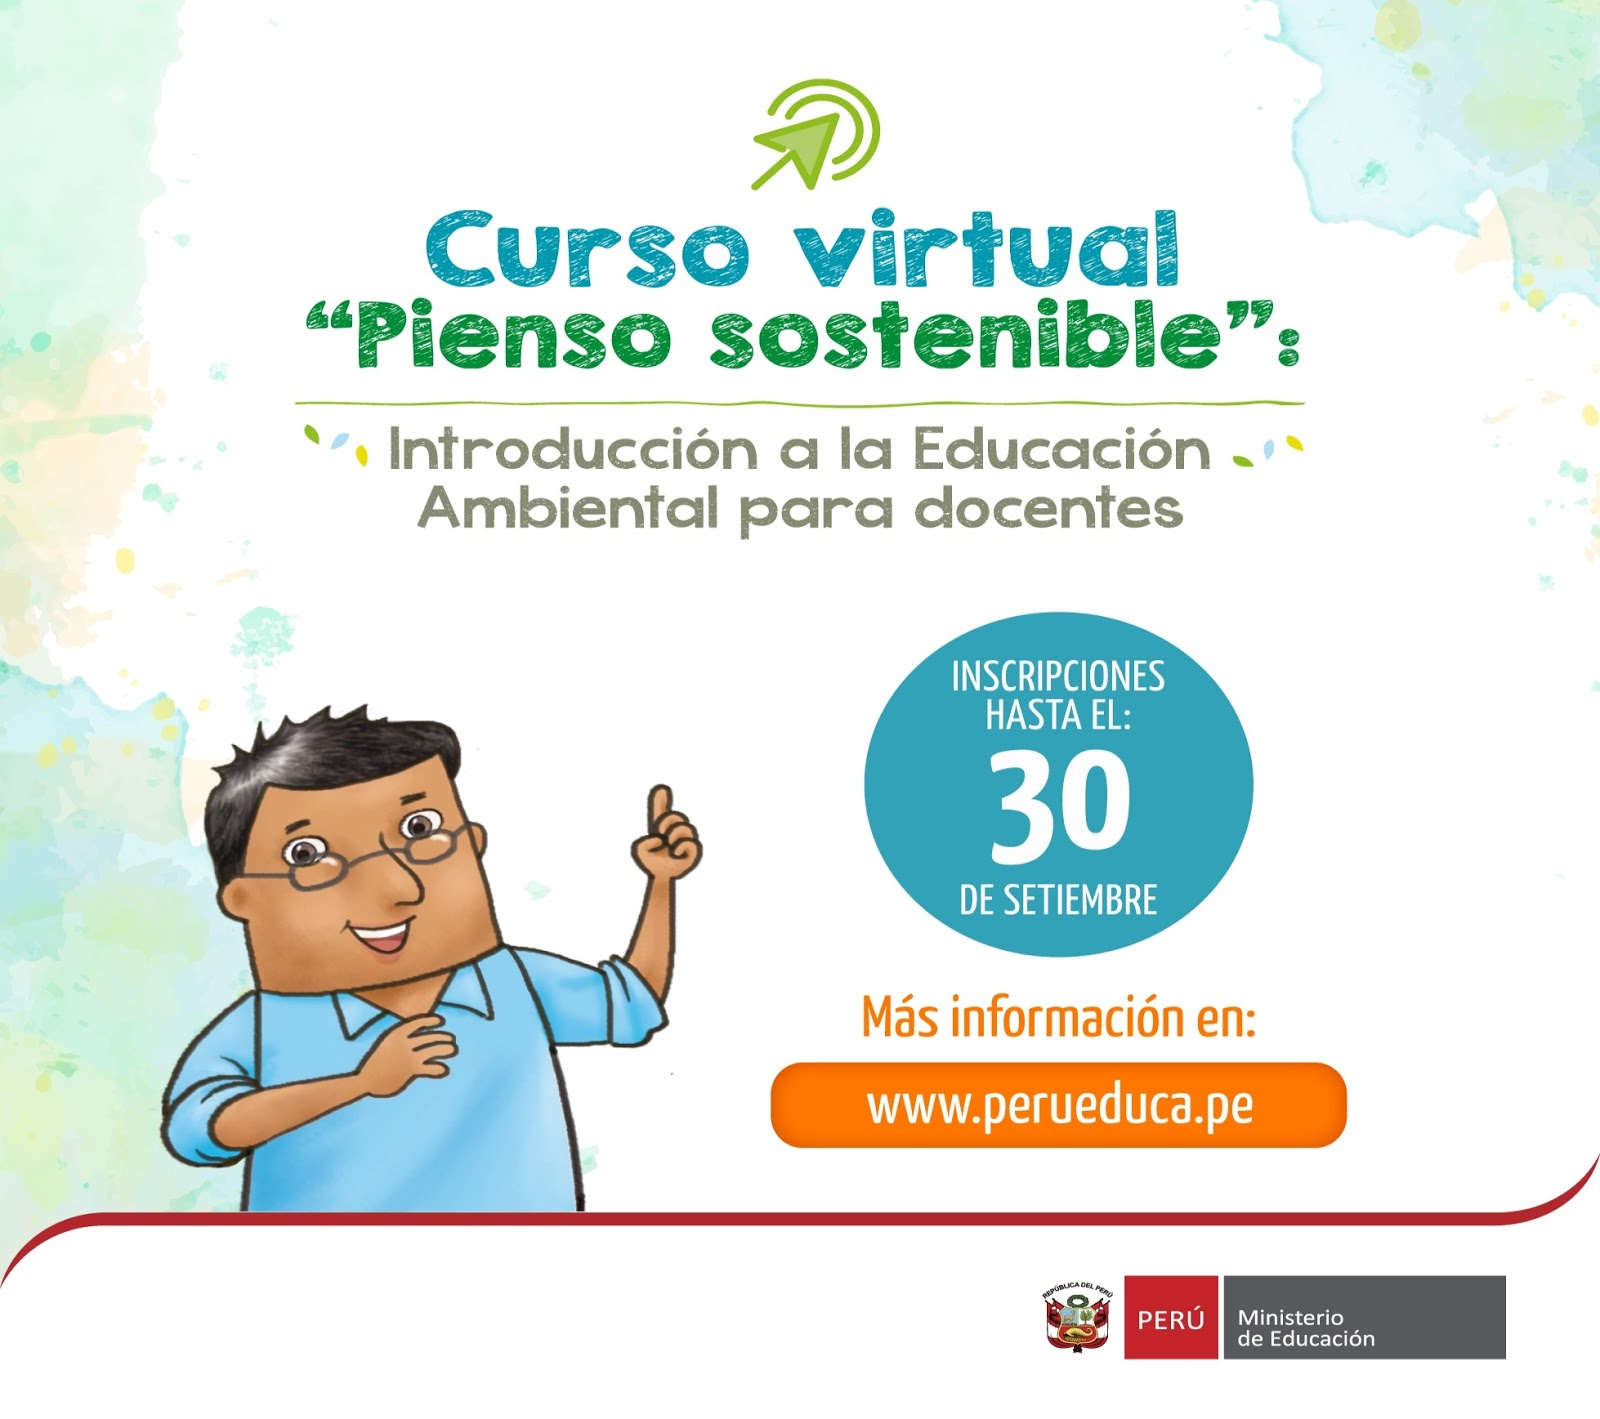 Curso virtual pienso sostenible introducci n a la for Curso concurso docente 2016